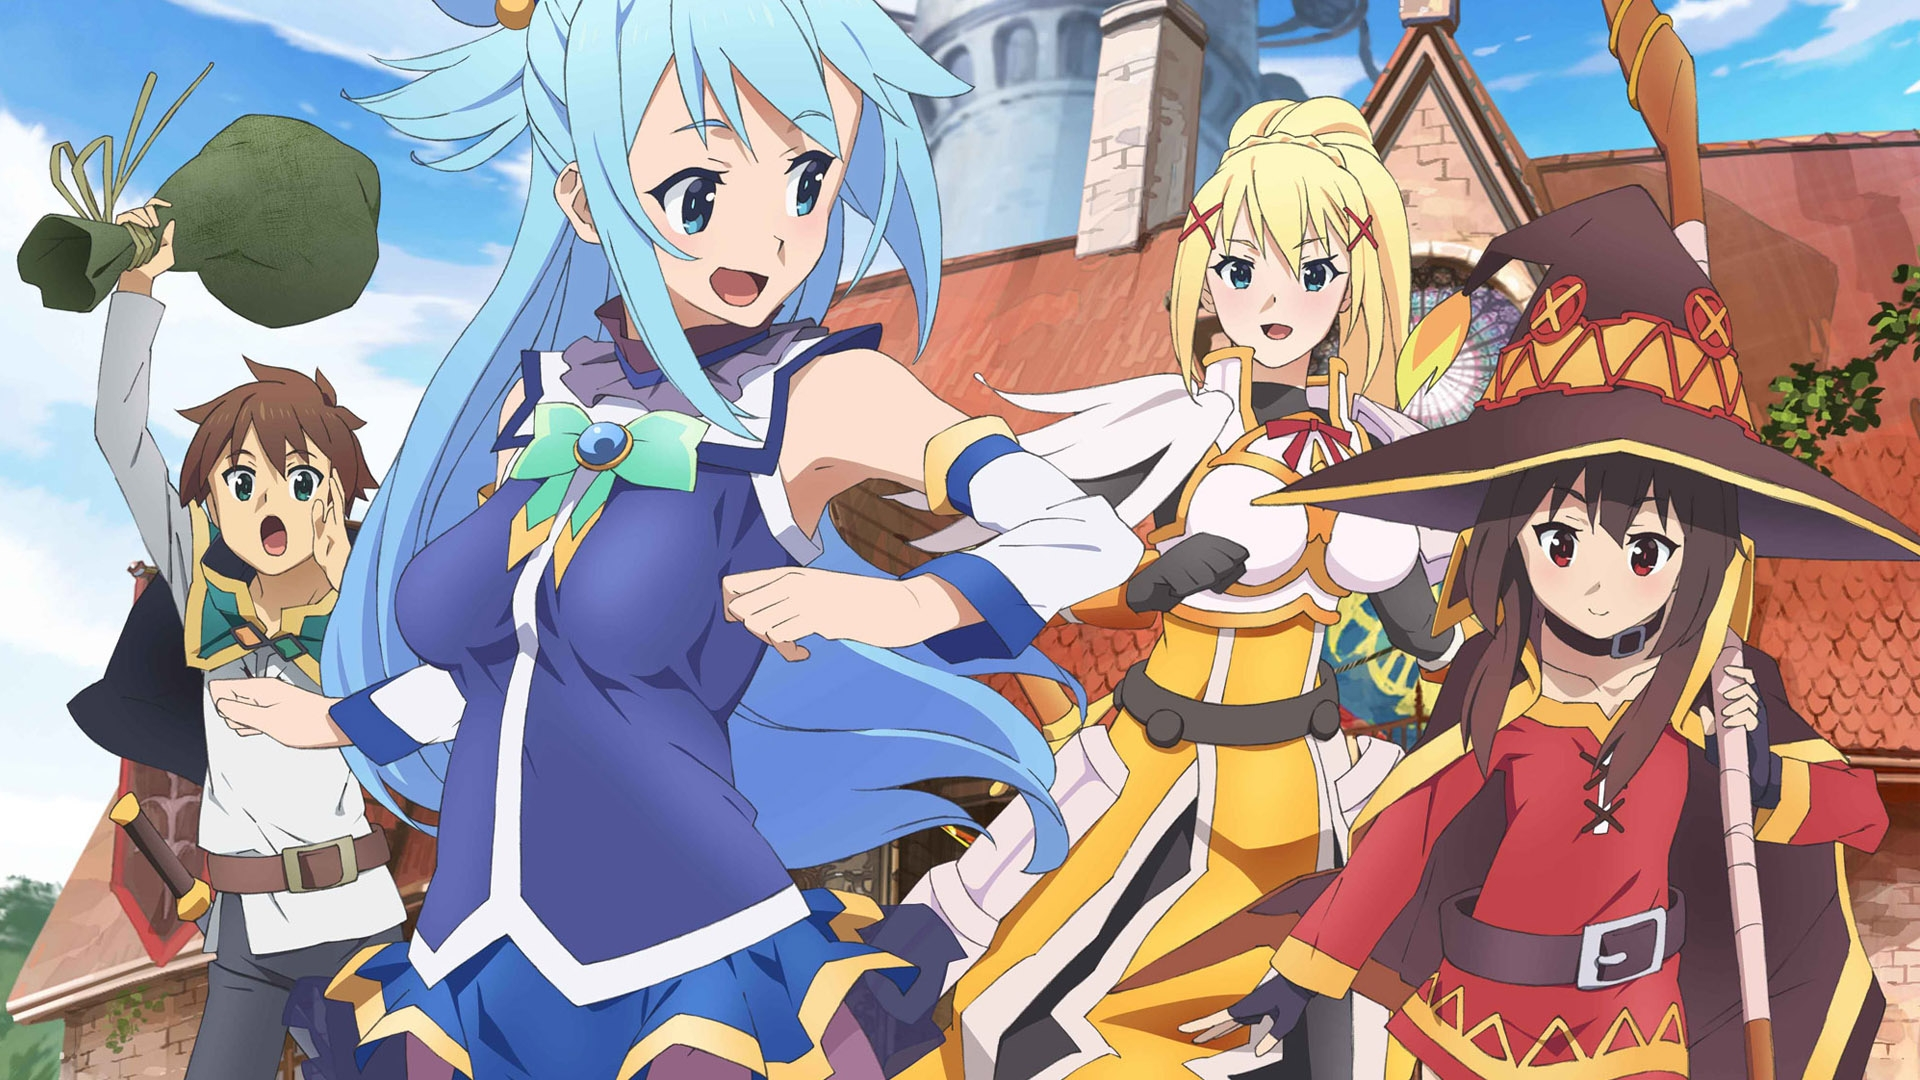 When The First Season Of Konosuba Aired I Initially Thought Little It This Was During A Time Fantasy RPG Genre Anime Almost Suffocating